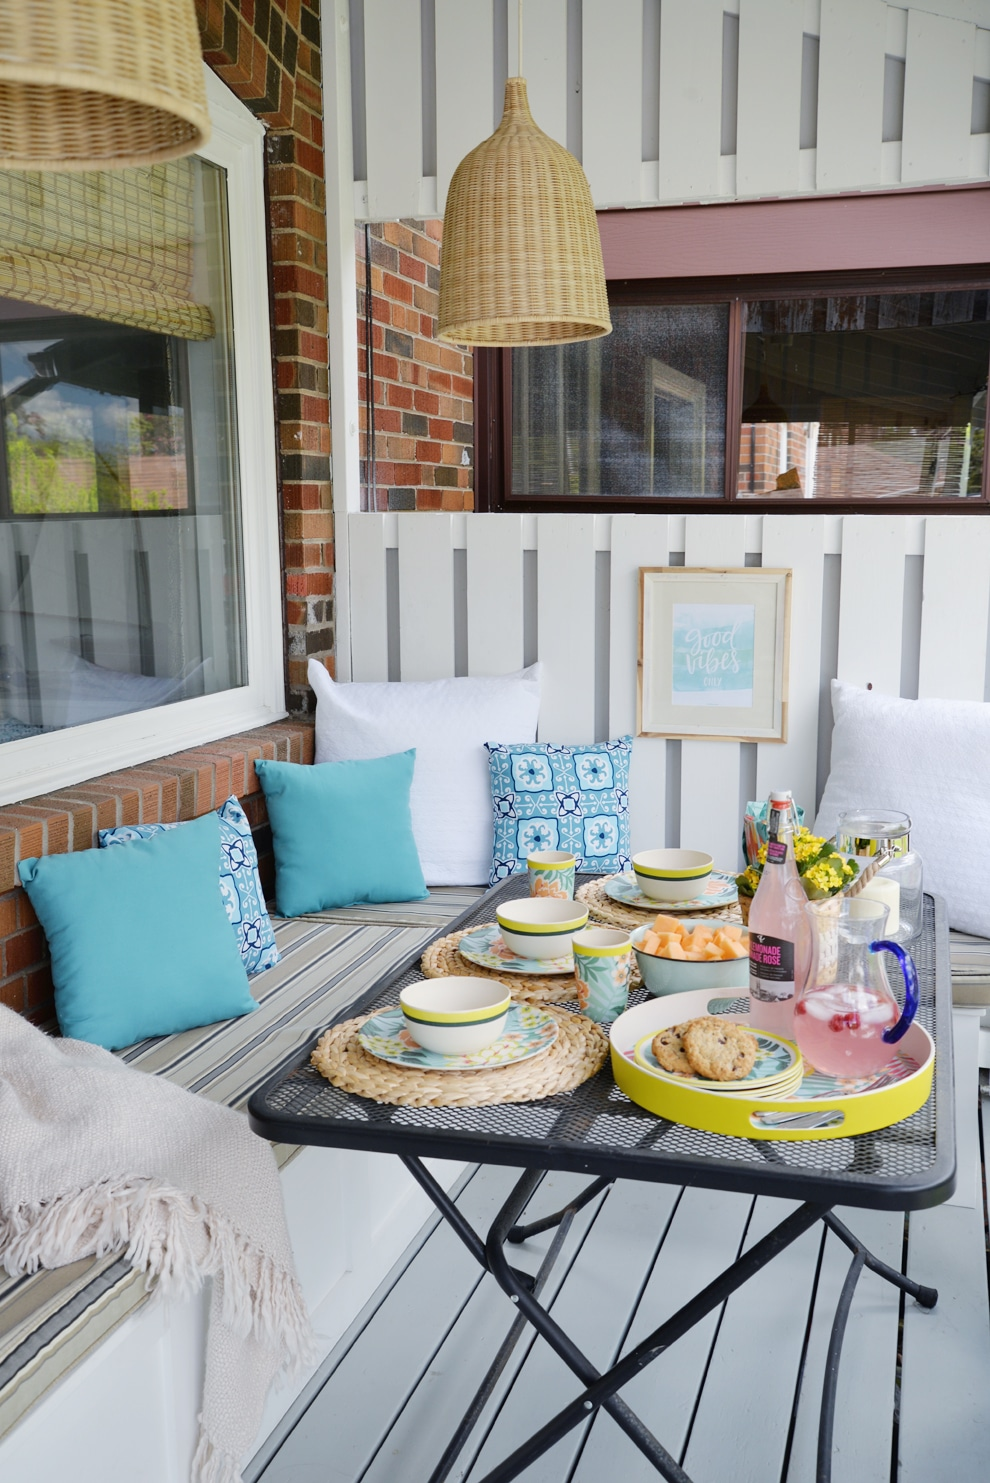 12 Stylish Porch, Deck and Patio Decor Ideas - Setting for ... on Patio With Deck Ideas id=89985